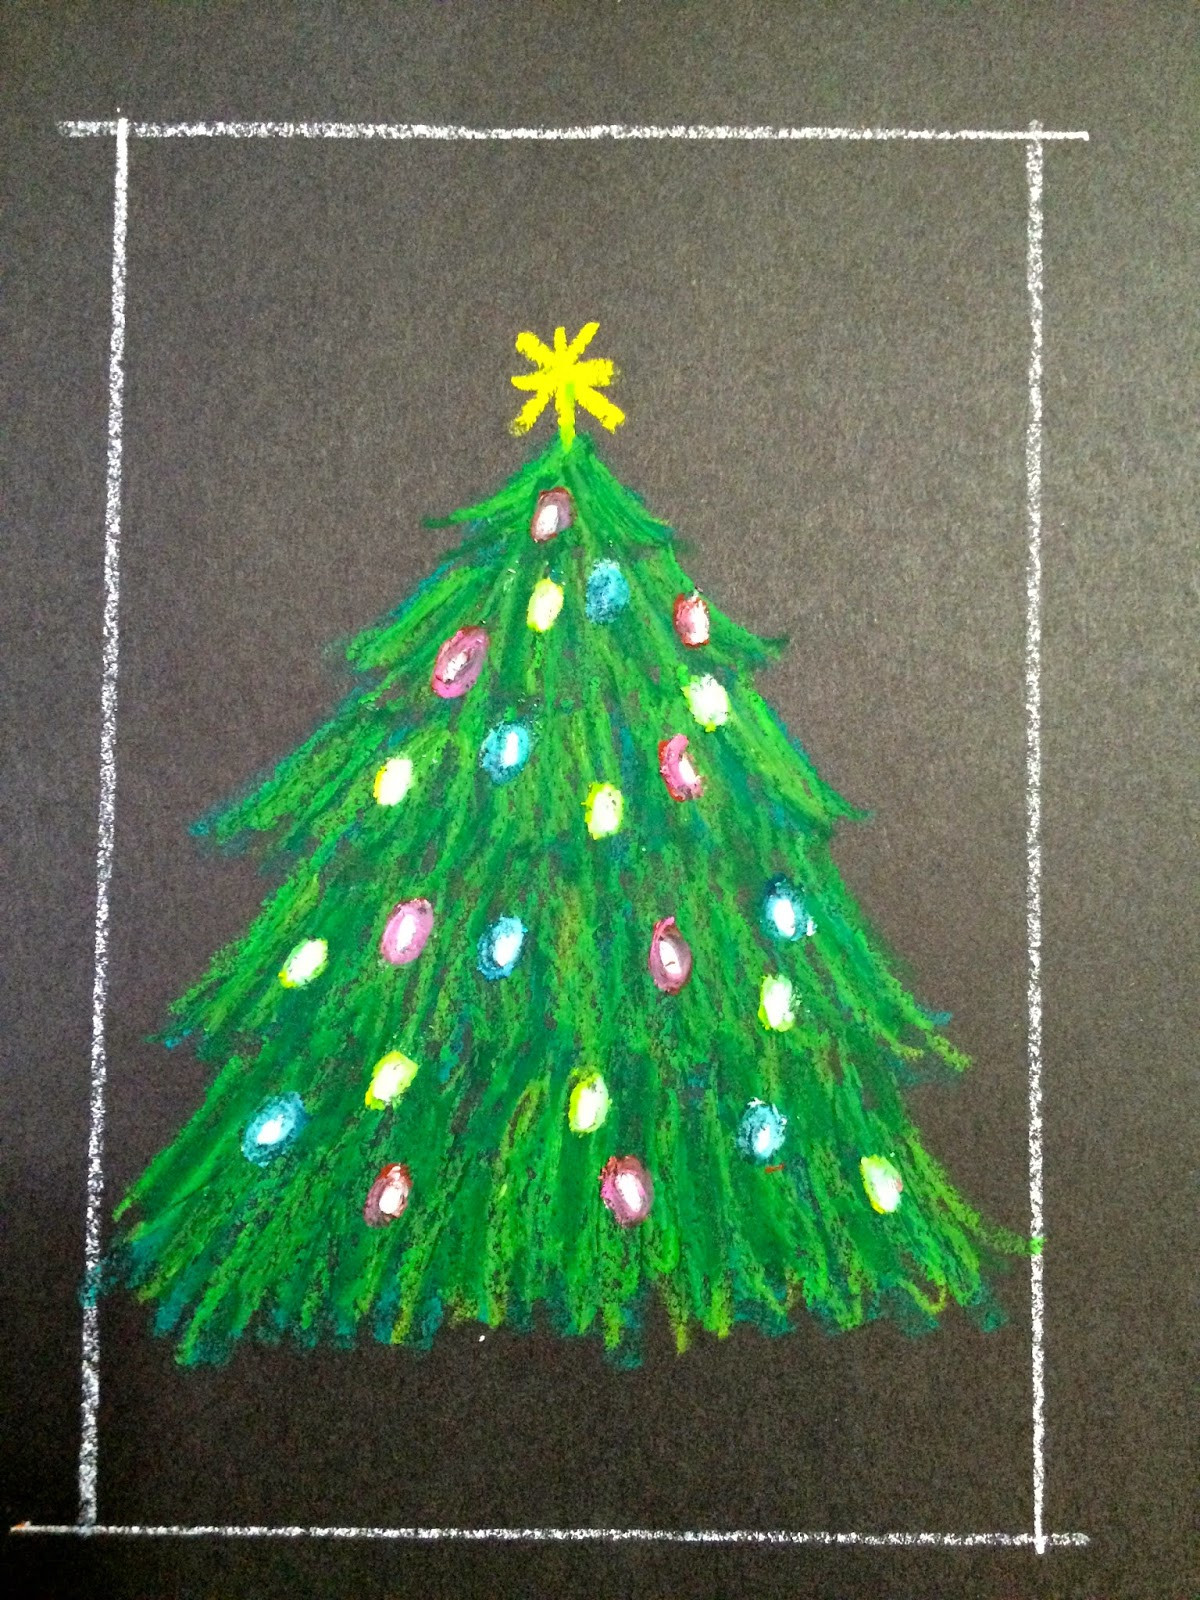 Christmas Arts Ideas  Kathy s Art Project Ideas Oil Pastel Christmas Tree in a